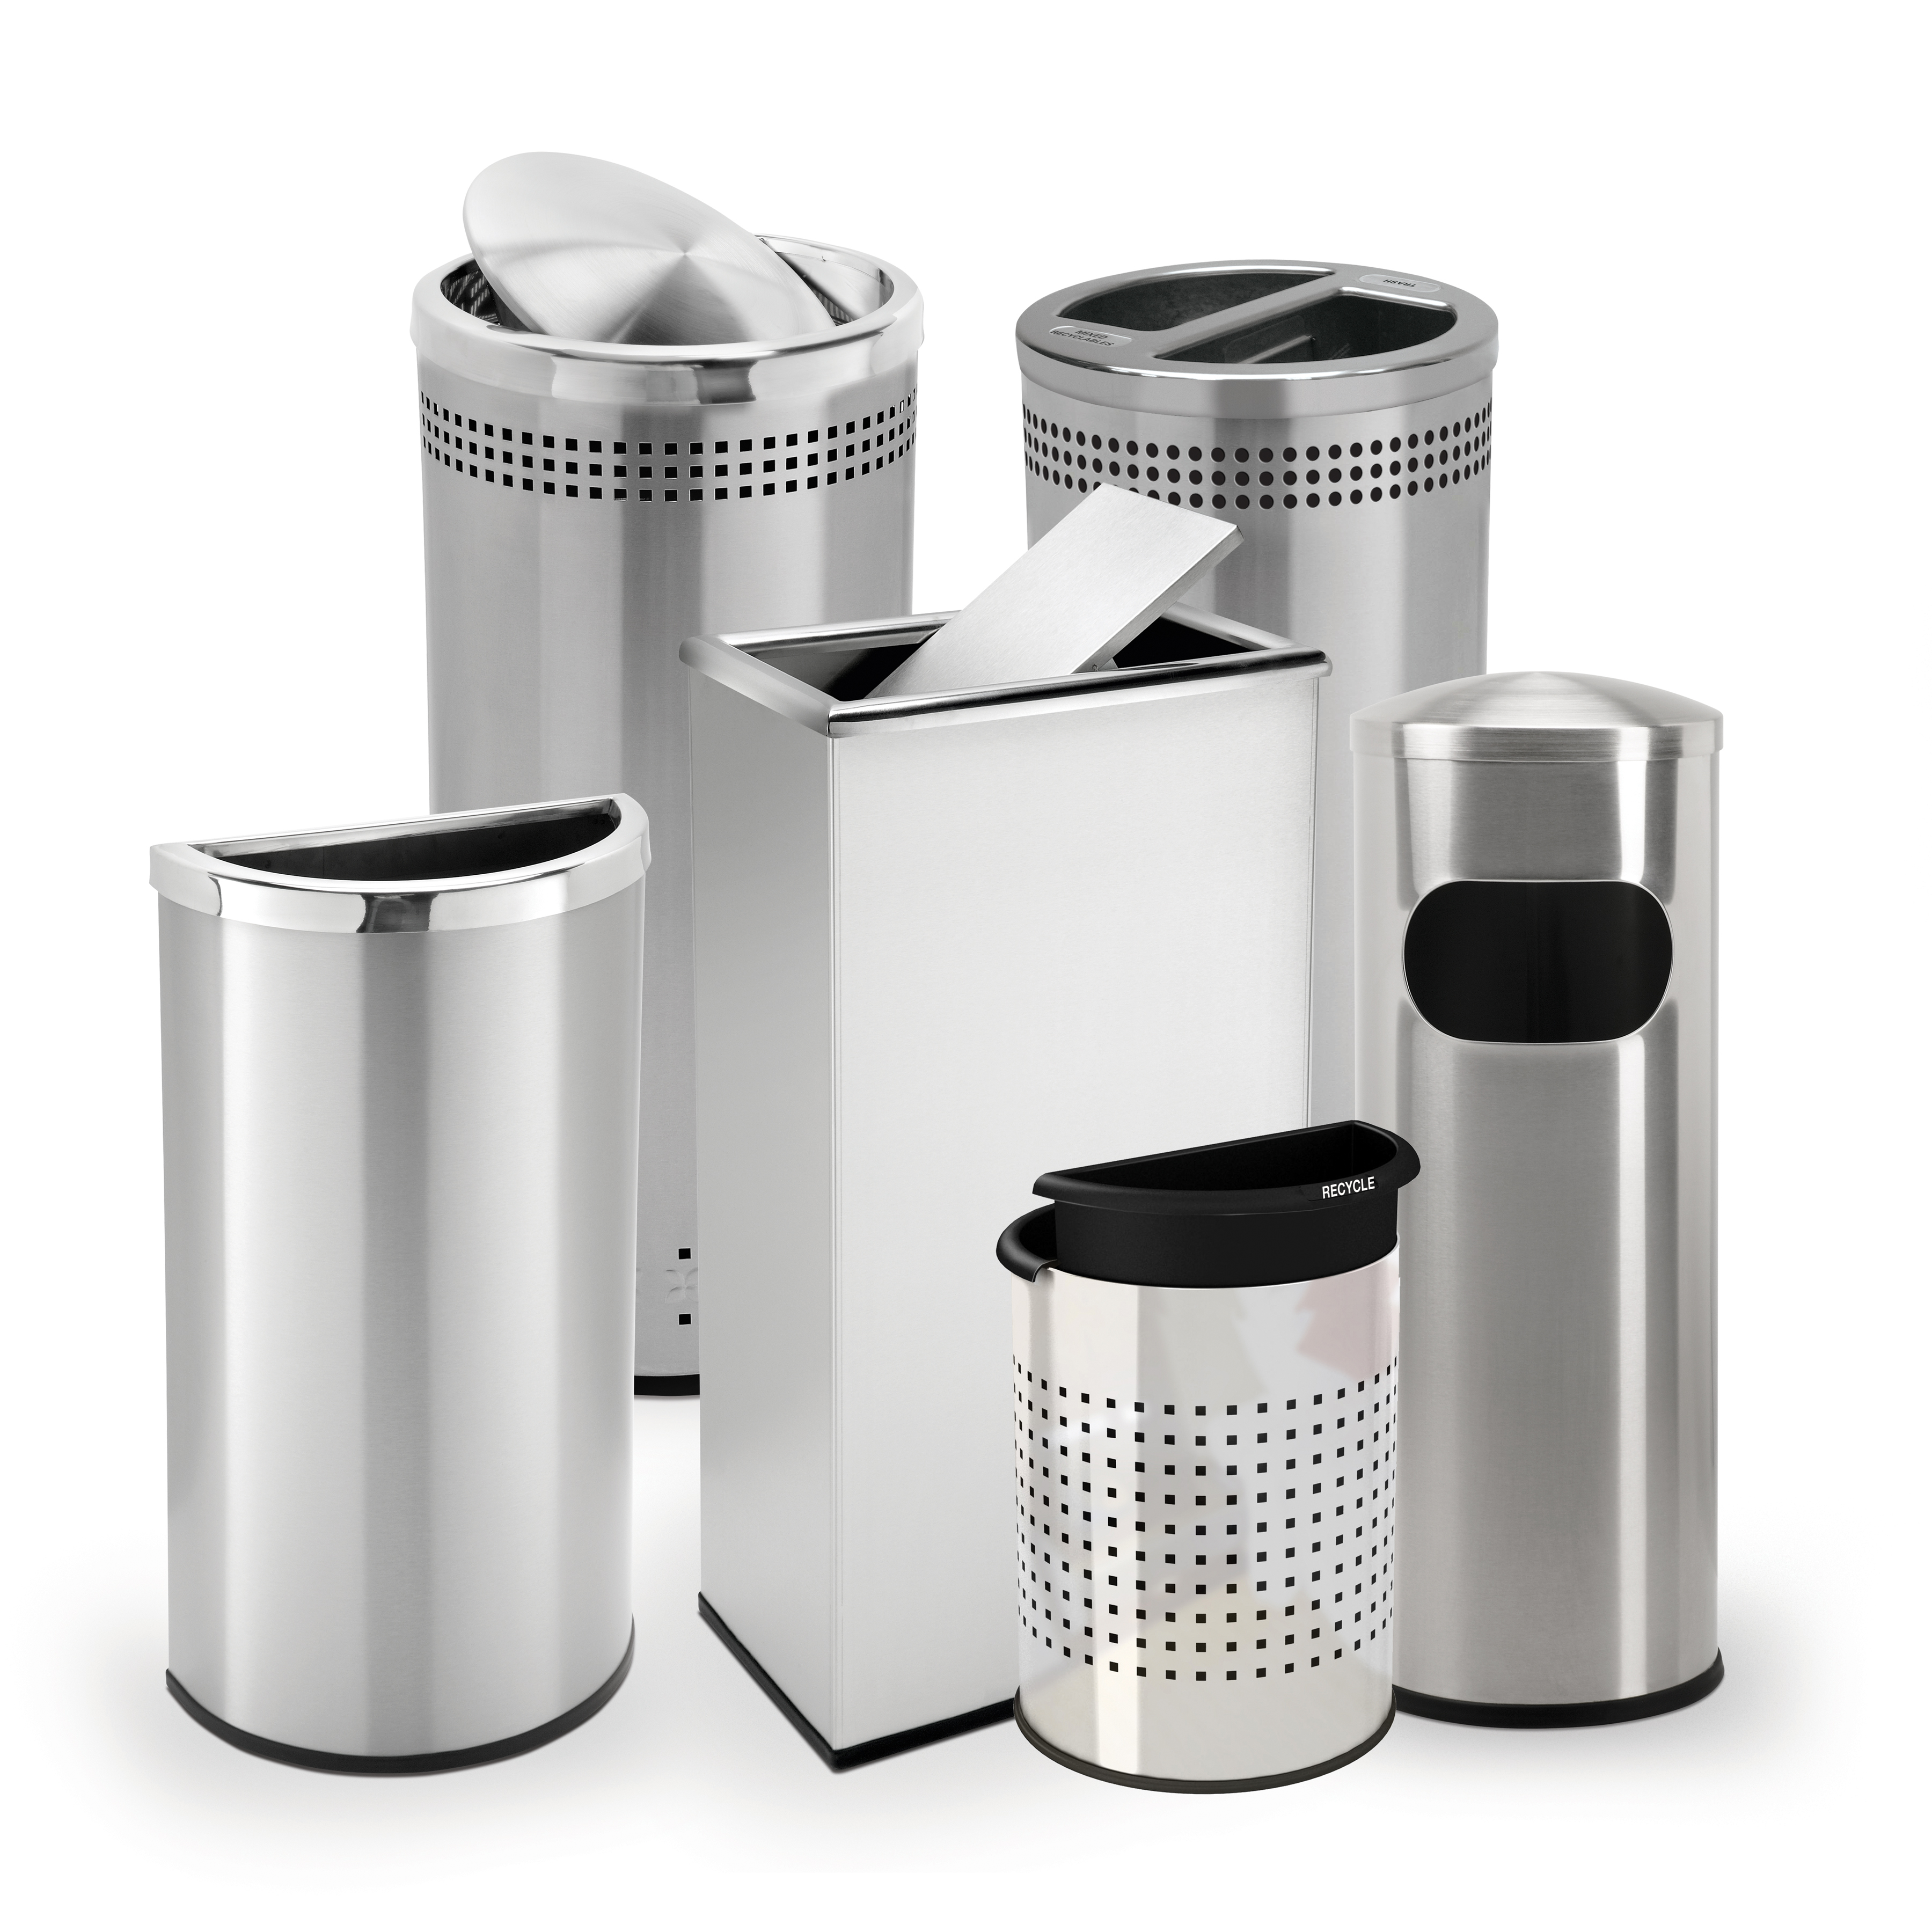 premium-stainless-trash-cans.jpg